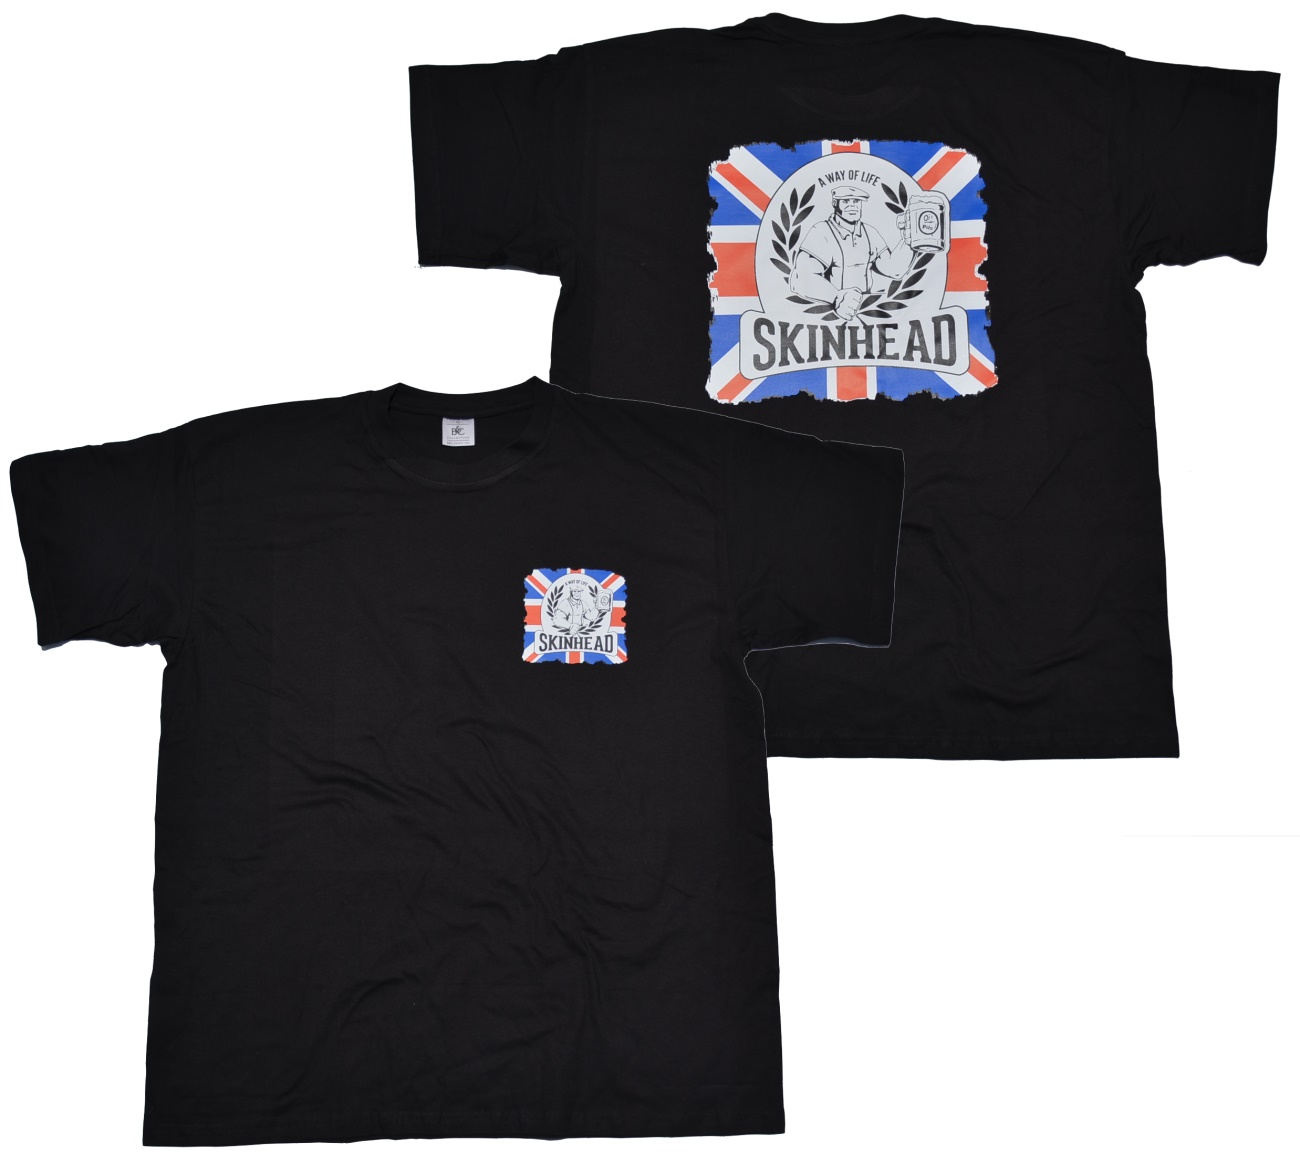 T shirt skinhead a way of life union jack g514 k34 for Kleiner schrank weiay